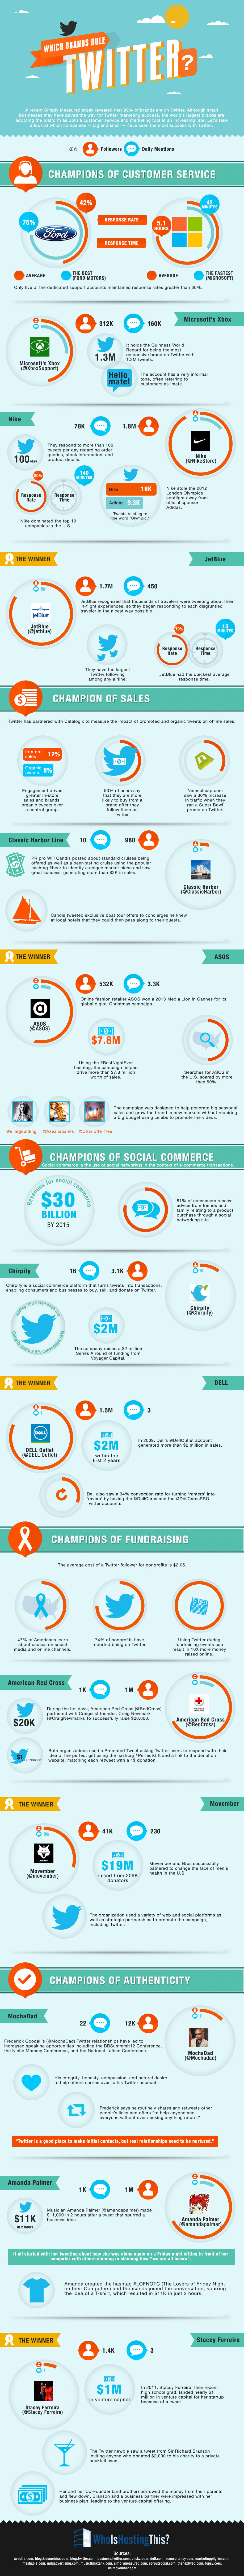 Which Brands Rule Twitter [Infographic]